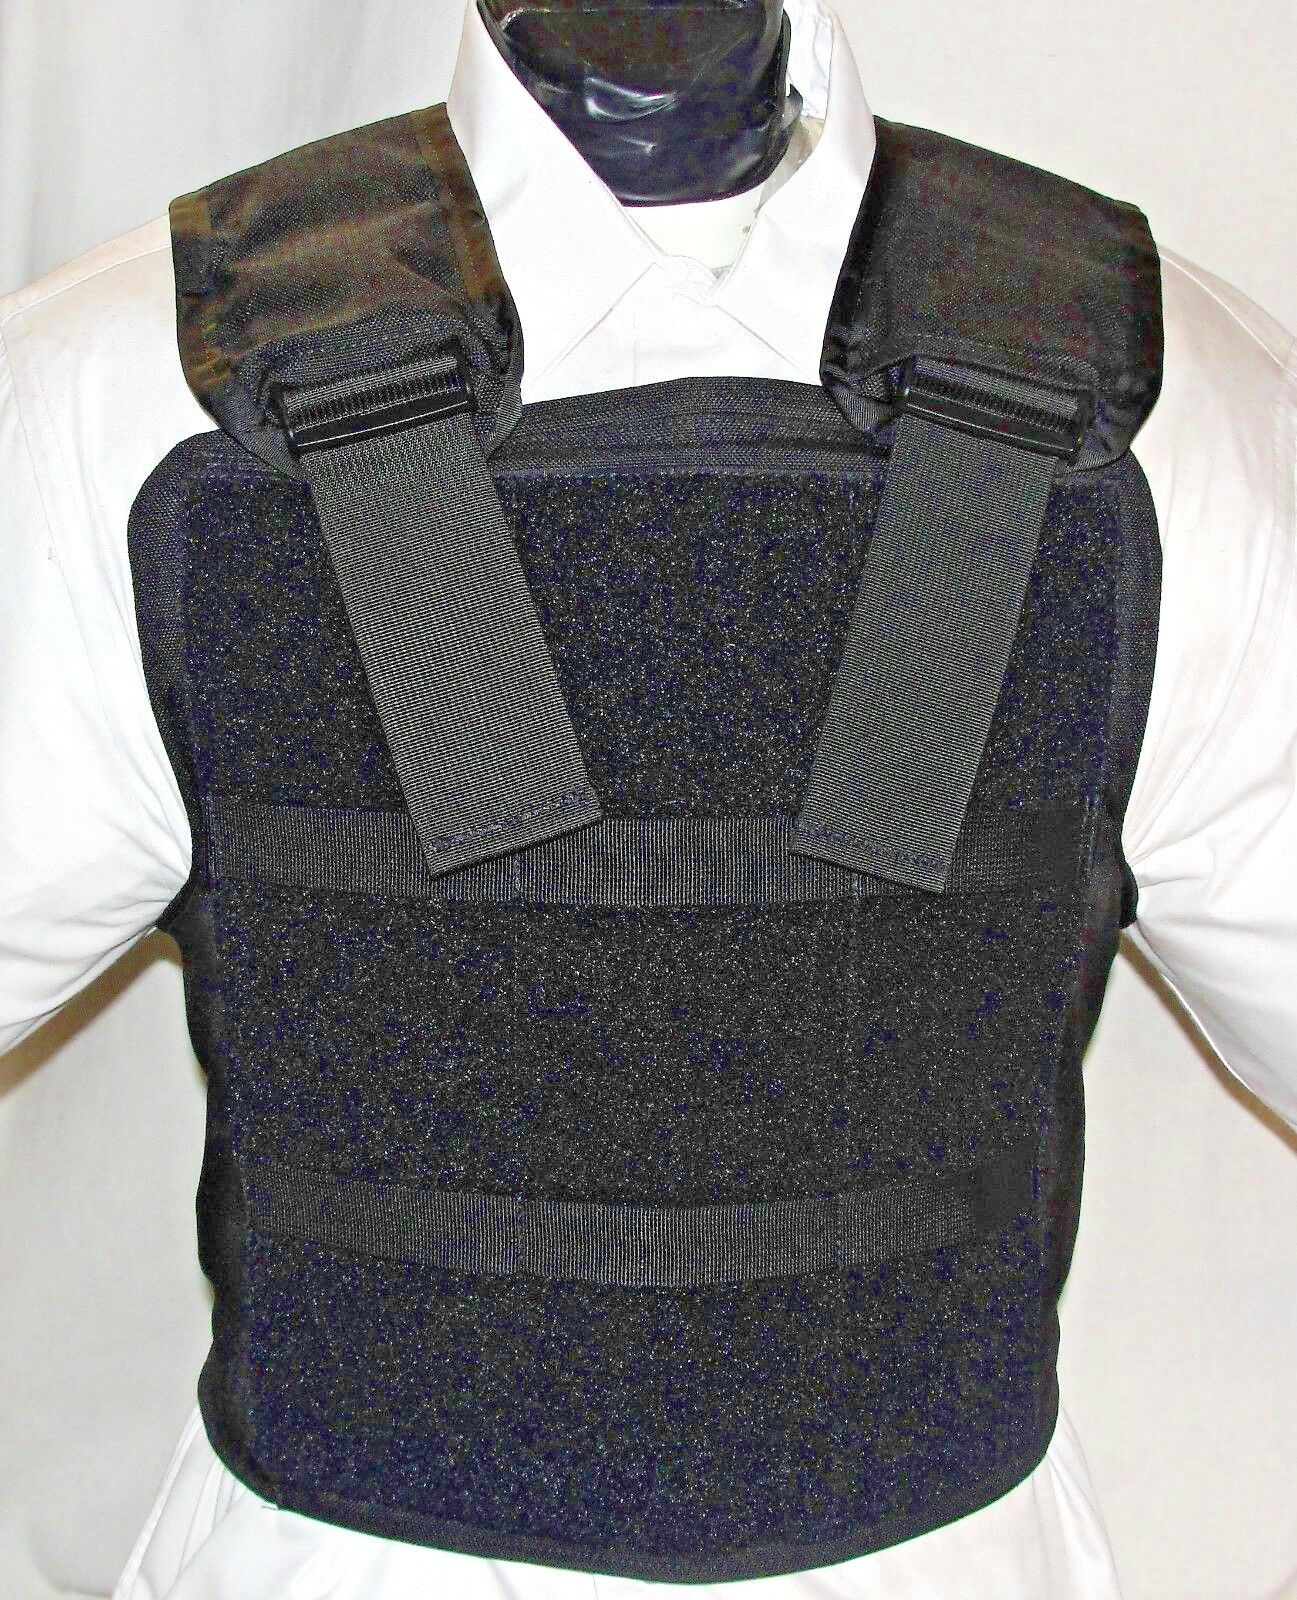 New XXL IIIA Tactical Plate  Carrier Body Armor Bullet Proof Vest  brand on sale clearance